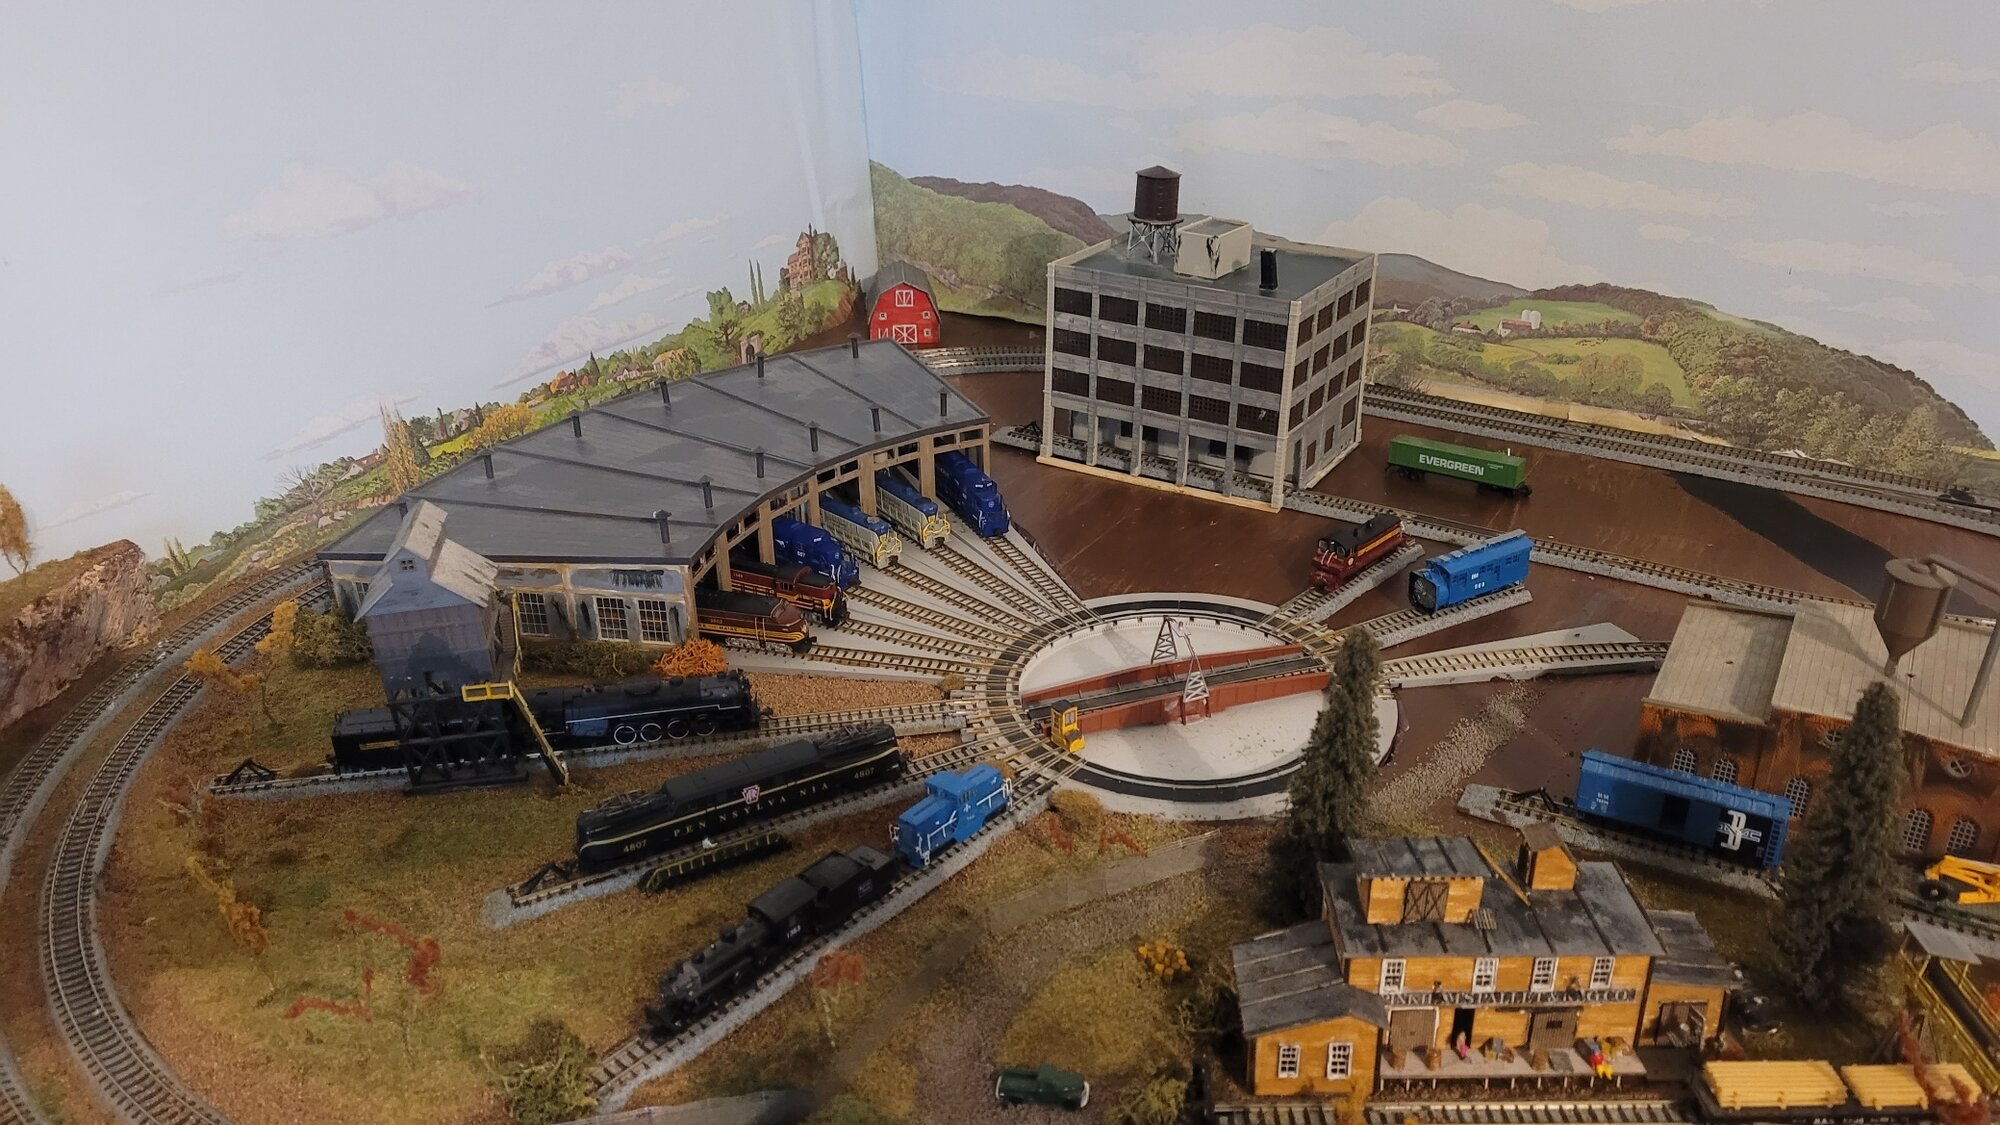 Roundhouse - A.jpg